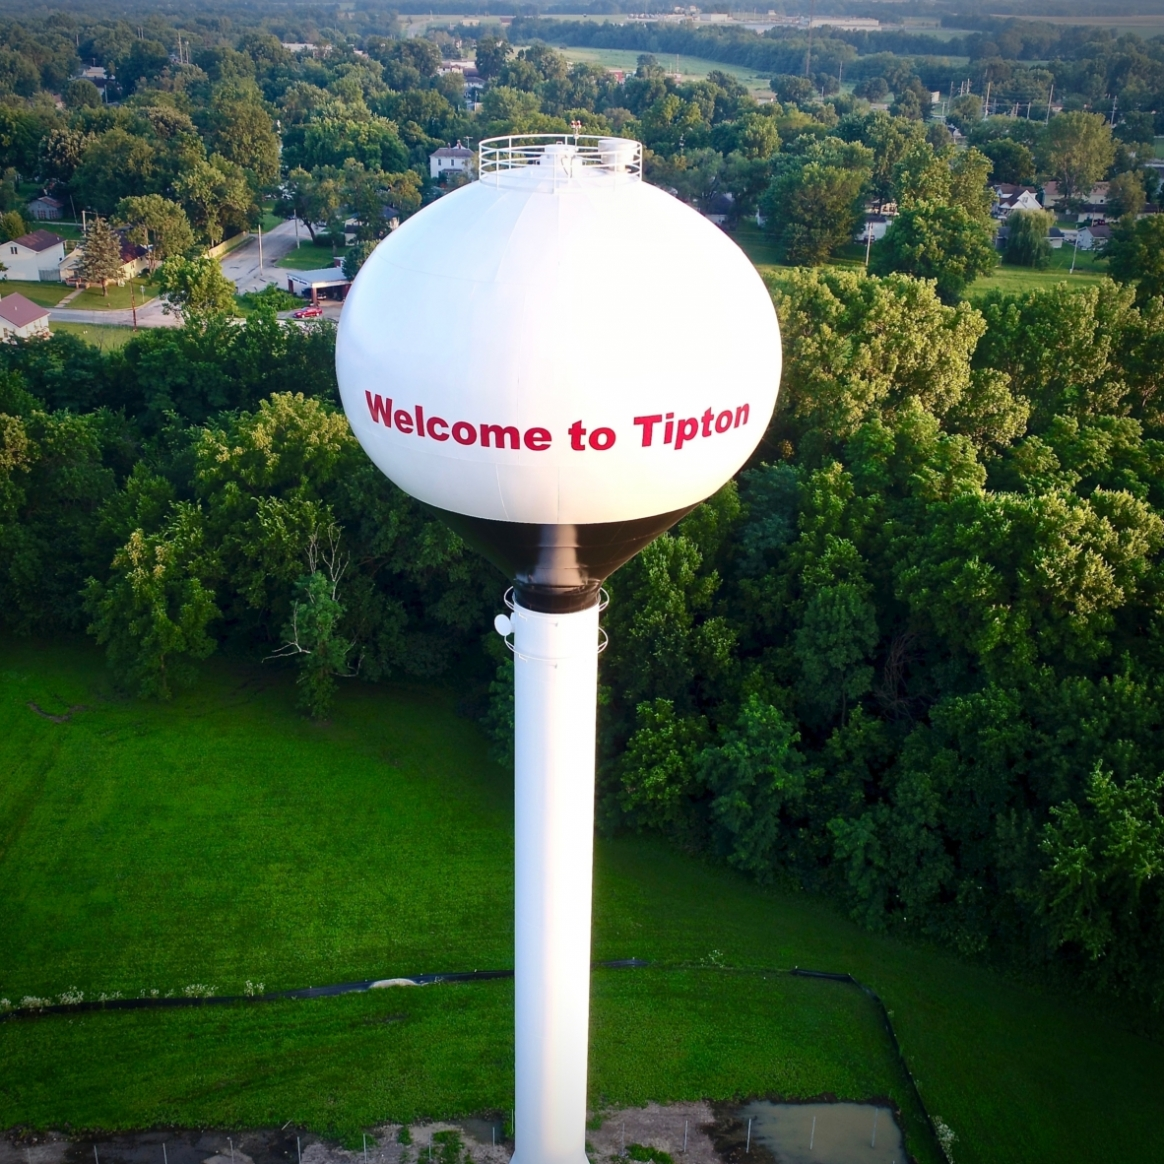 Tipton Water Tower. Photograph by Steve Garber.